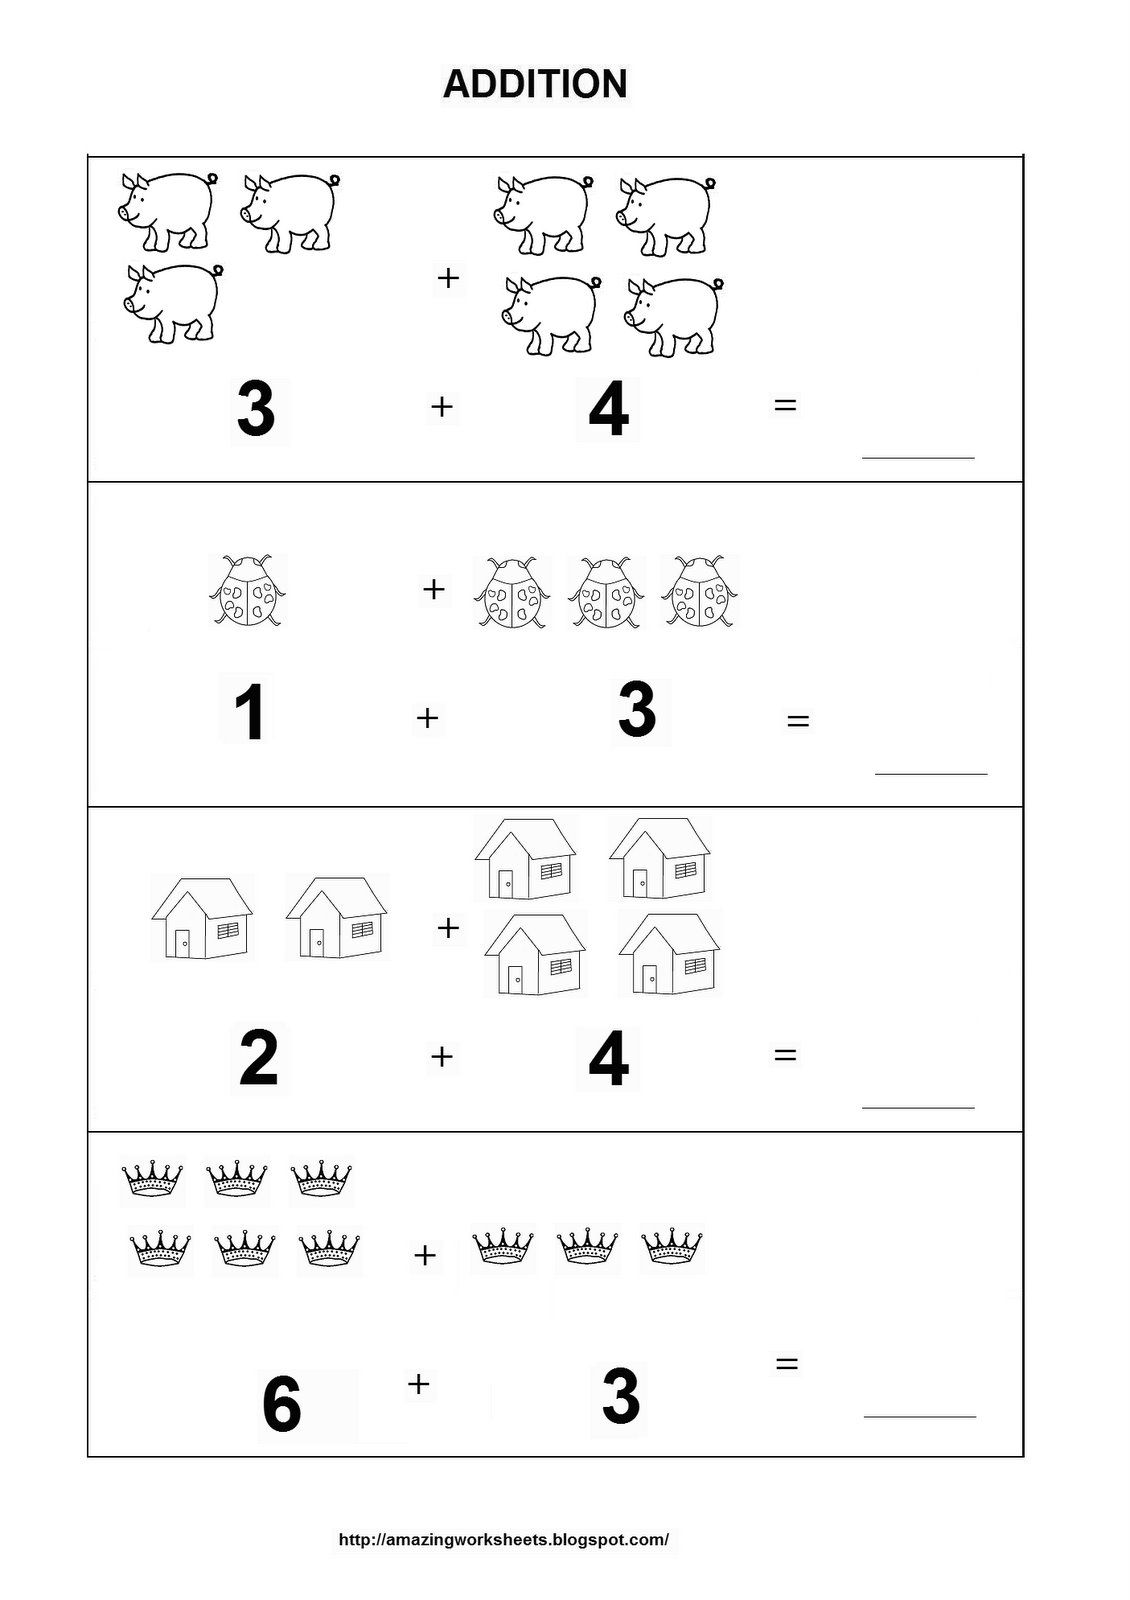 Worksheet 612792 Additions Worksheets Addition Worksheets 60 – Addition Worksheets Kindergarten Printable